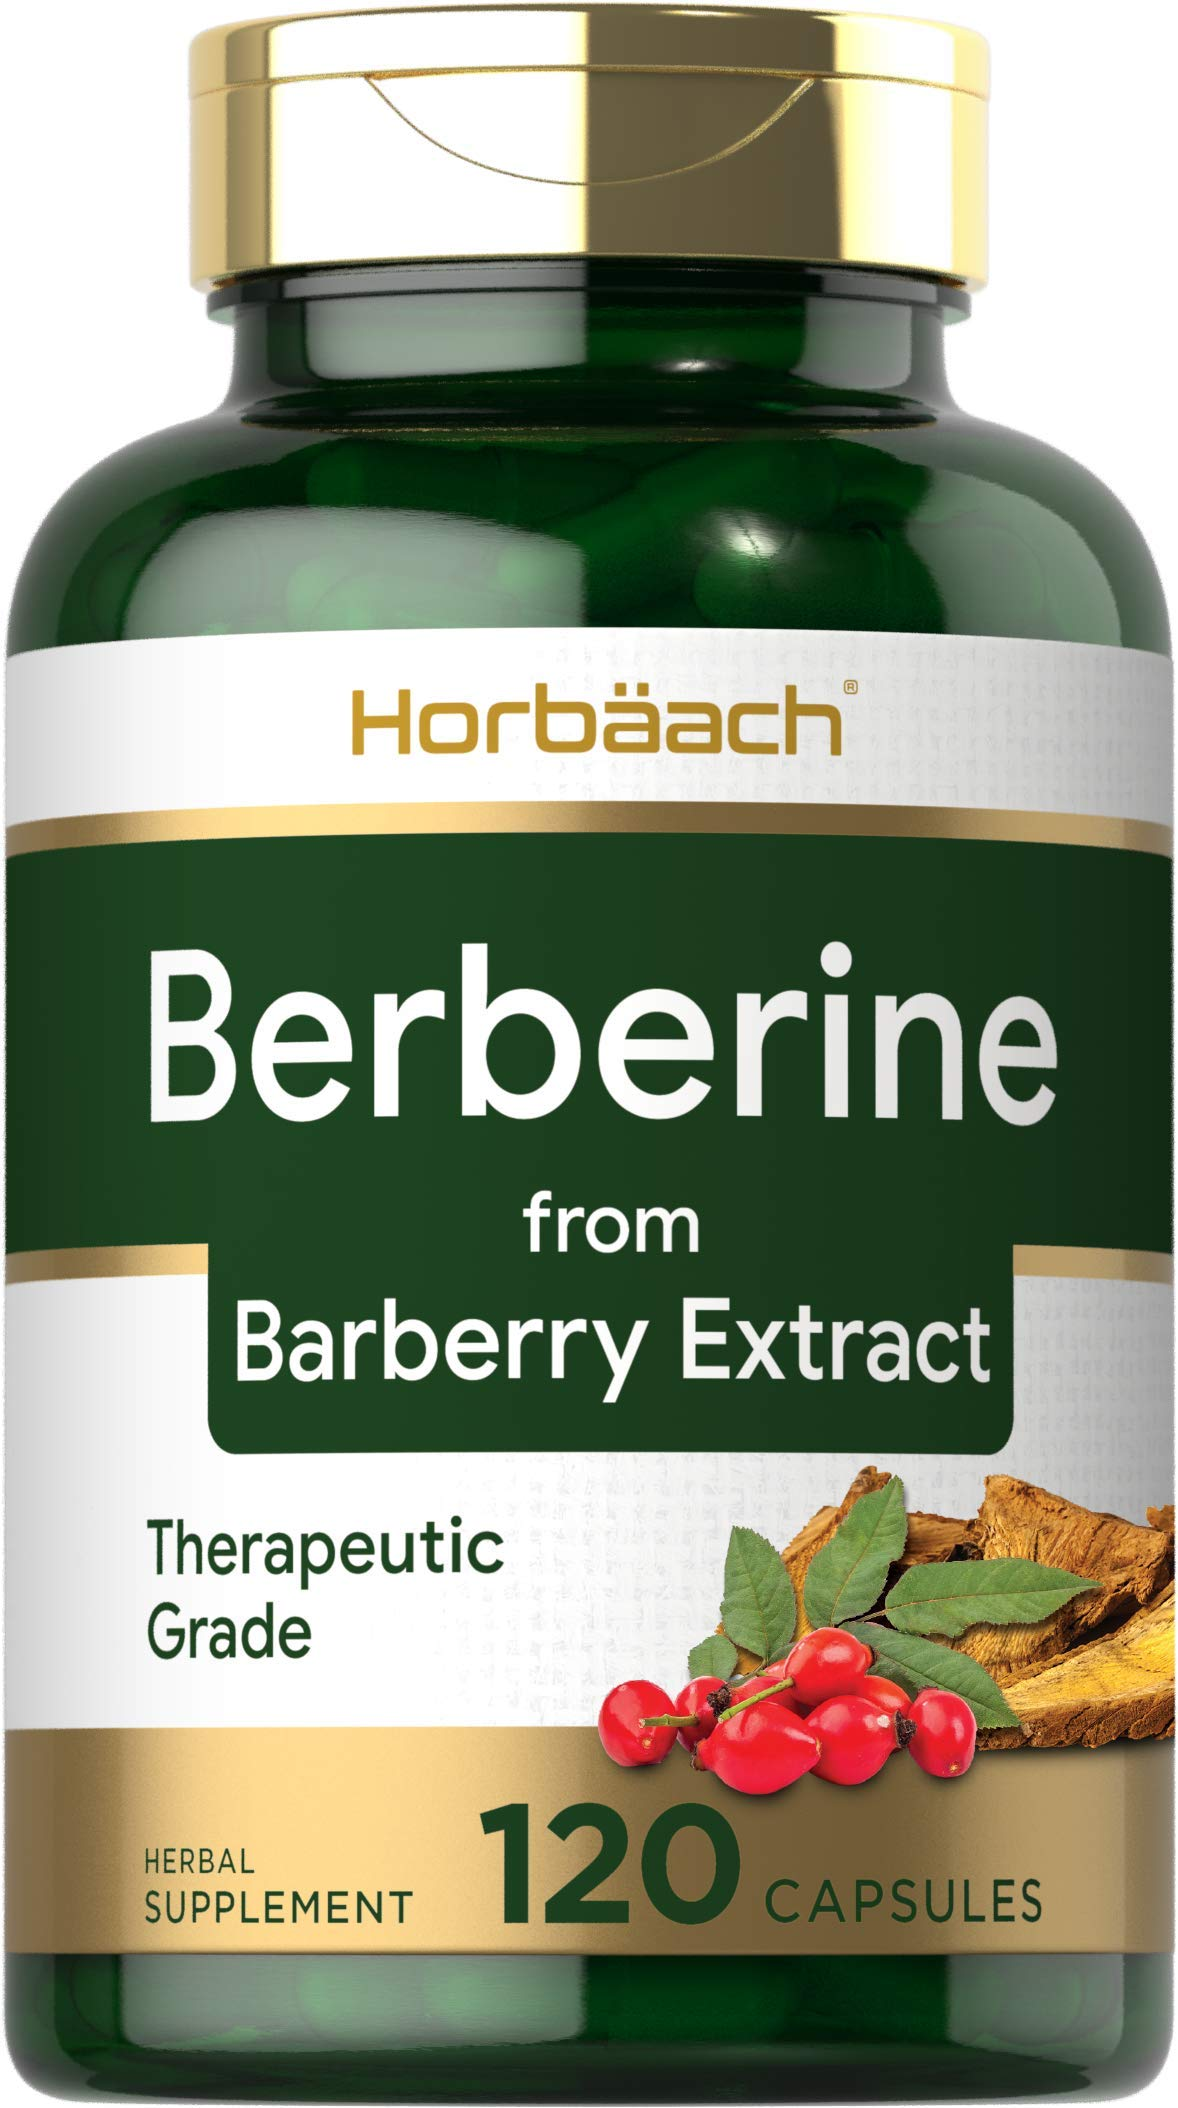 Berberine Capsules   120 Count   Non-GMO & Gluten Free   Berberine HCI Supplement   from Barberry Extract   by Horbaach